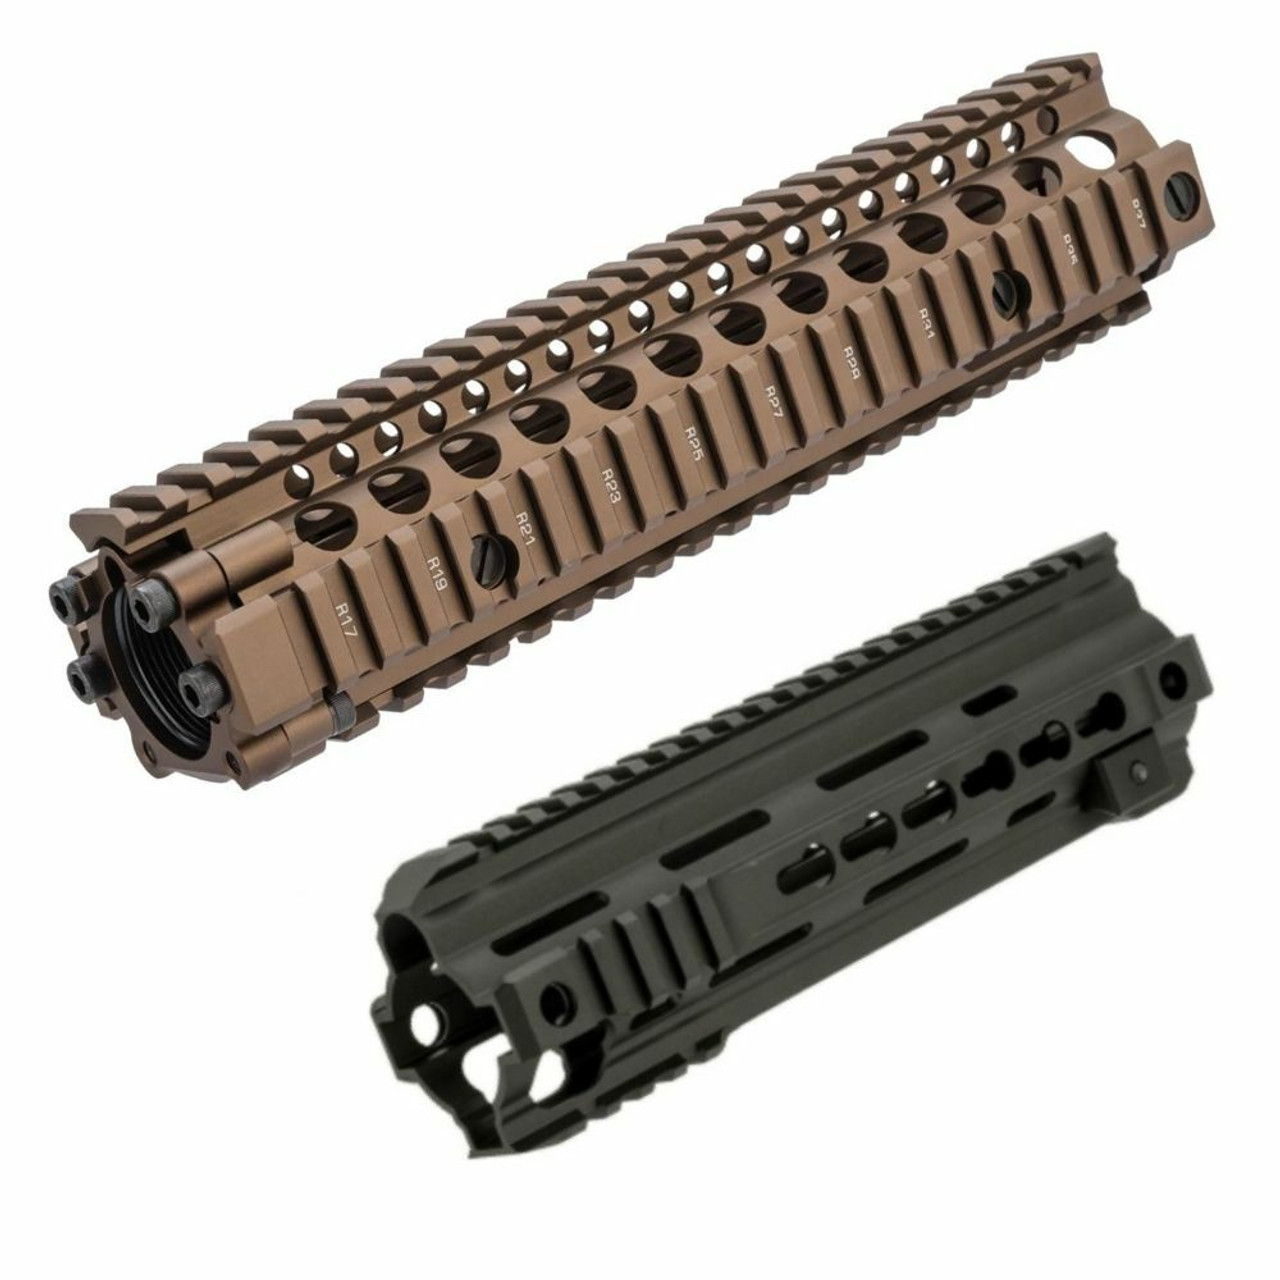 Airsoft Handguards & Rail Systems